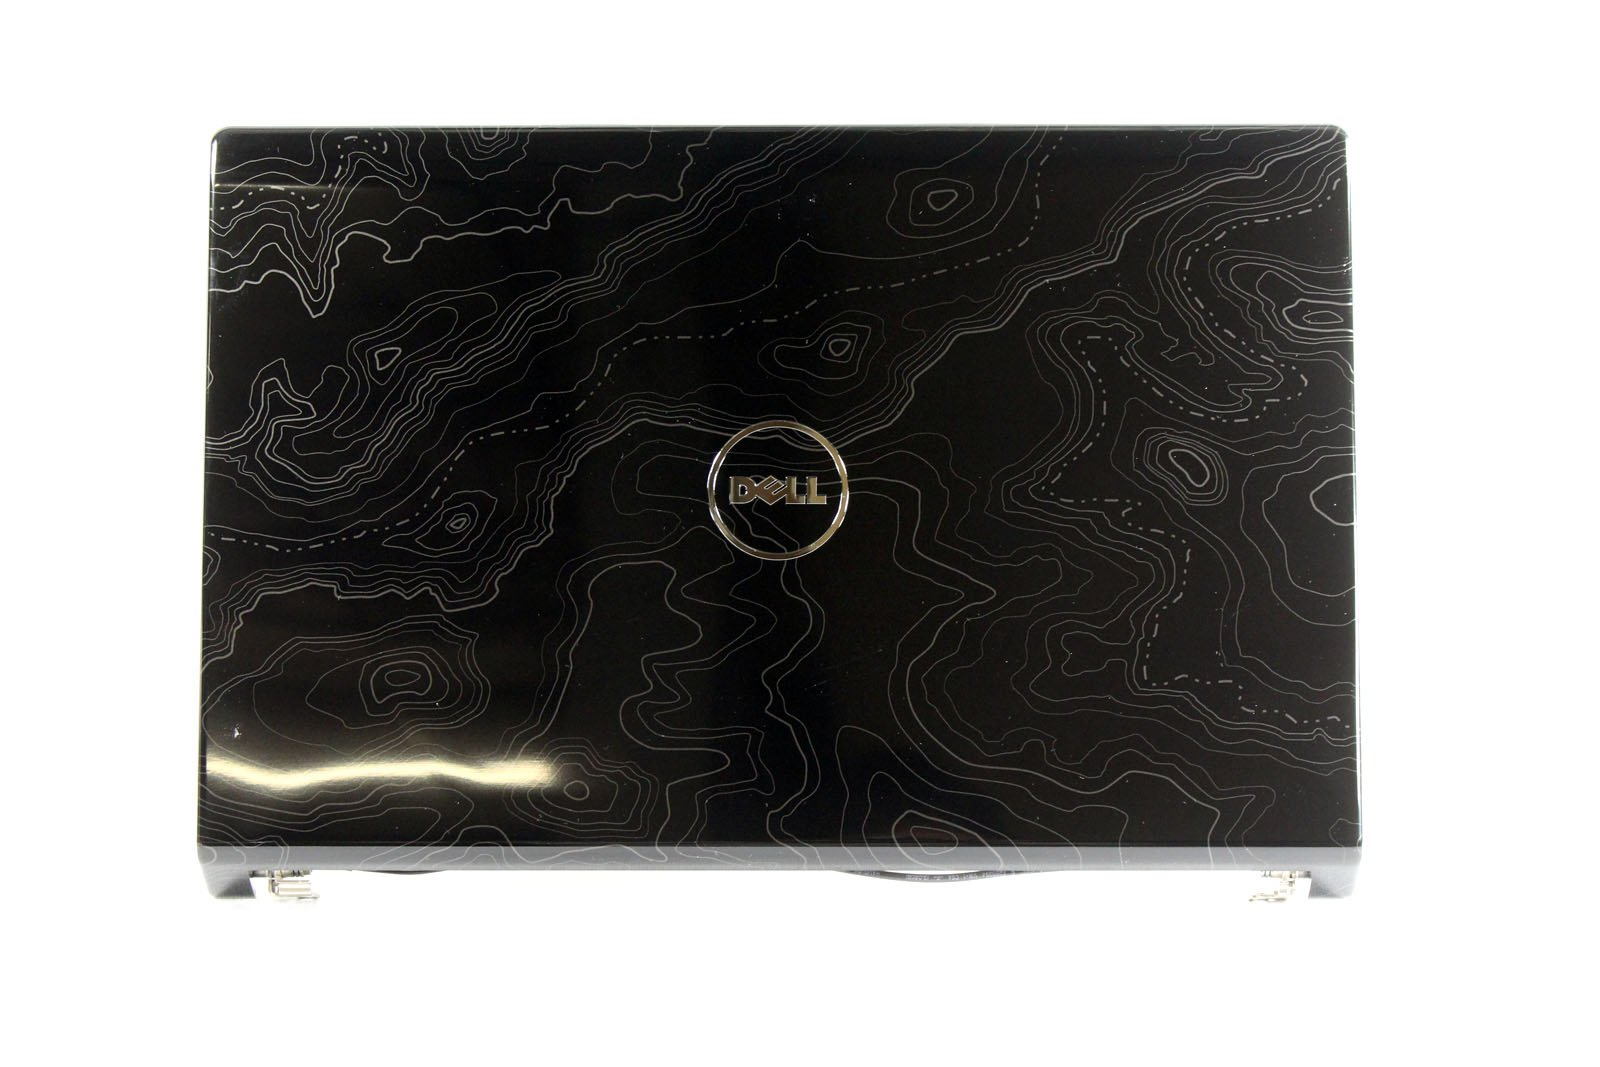 New Dell Studio 1555 1557 1558 15.6 Black Swirl LCD Back Cover with Hinges W413J